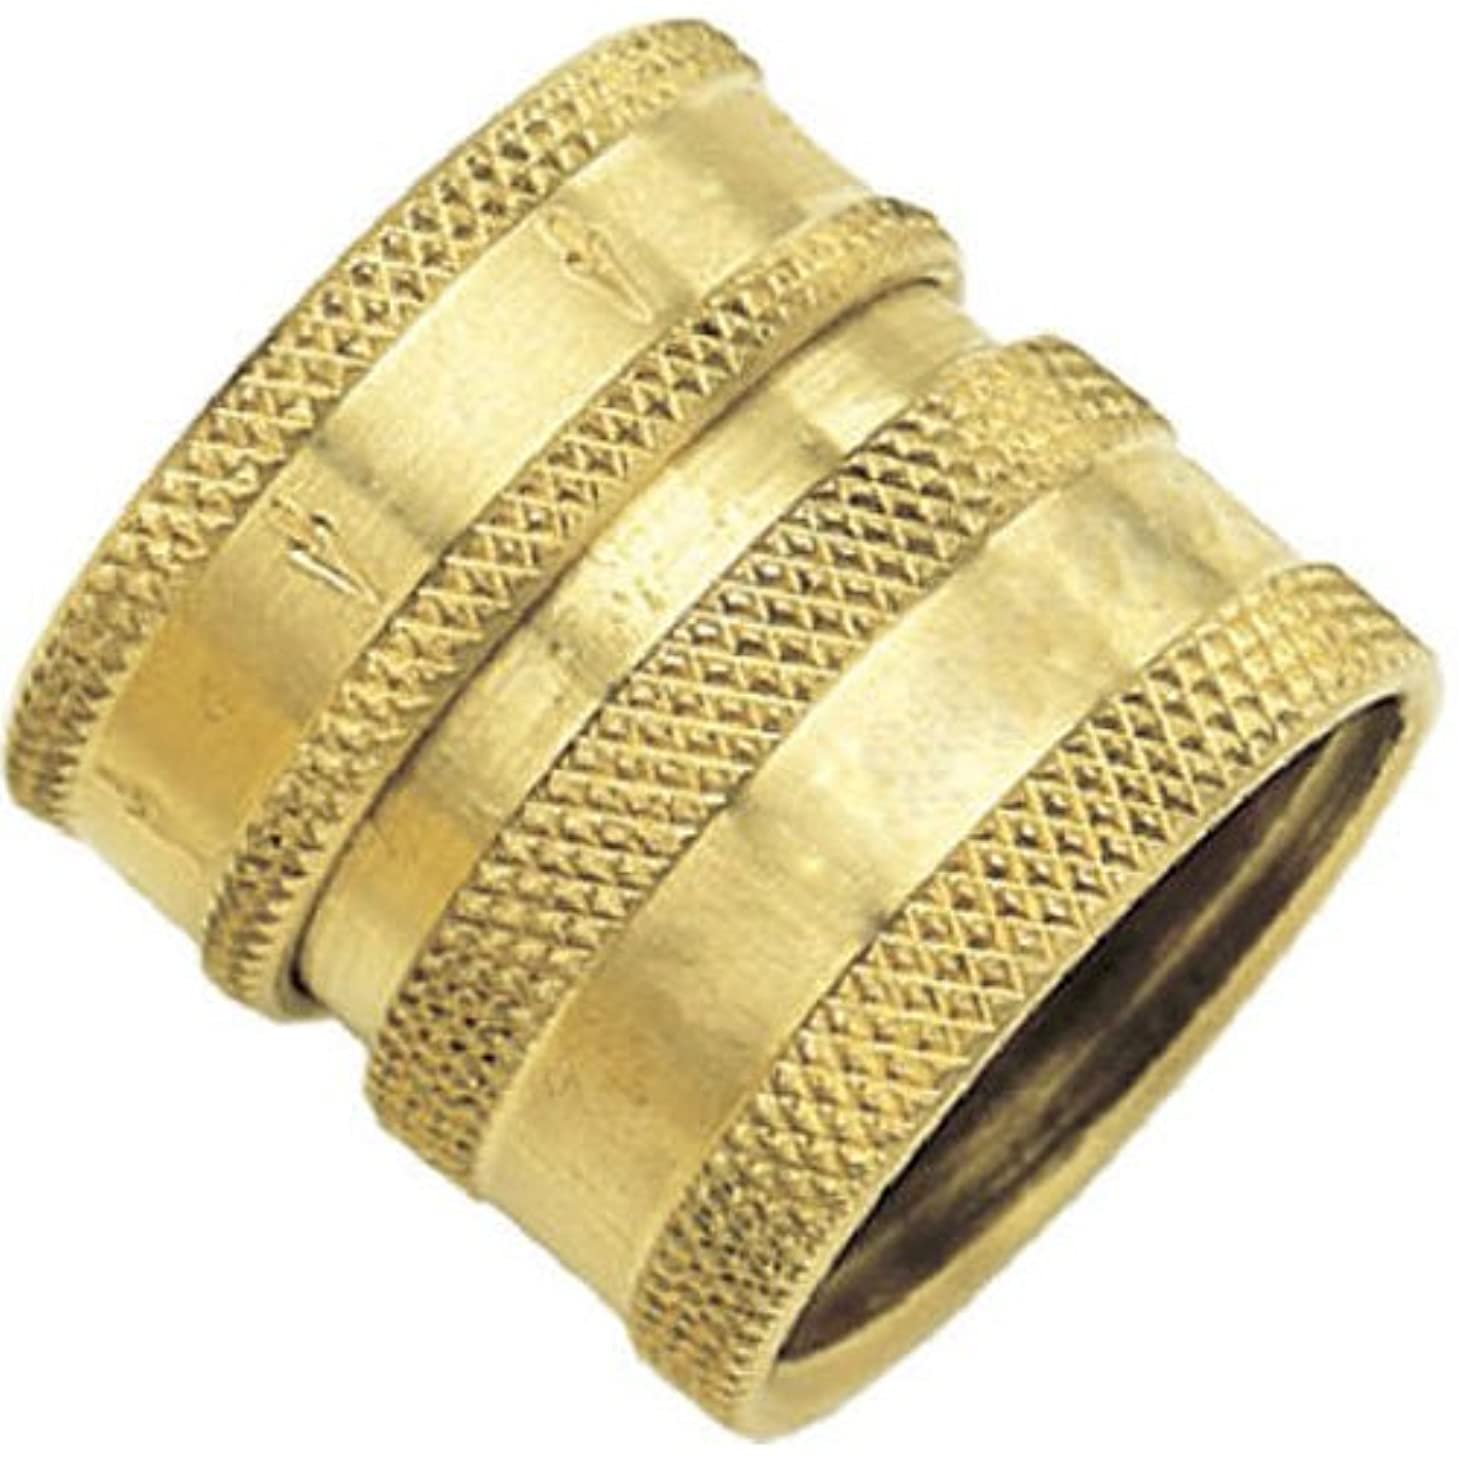 Bosch Garden and Watering 09QCFGT Green Thumb Brass Female Quick Connector for Hose